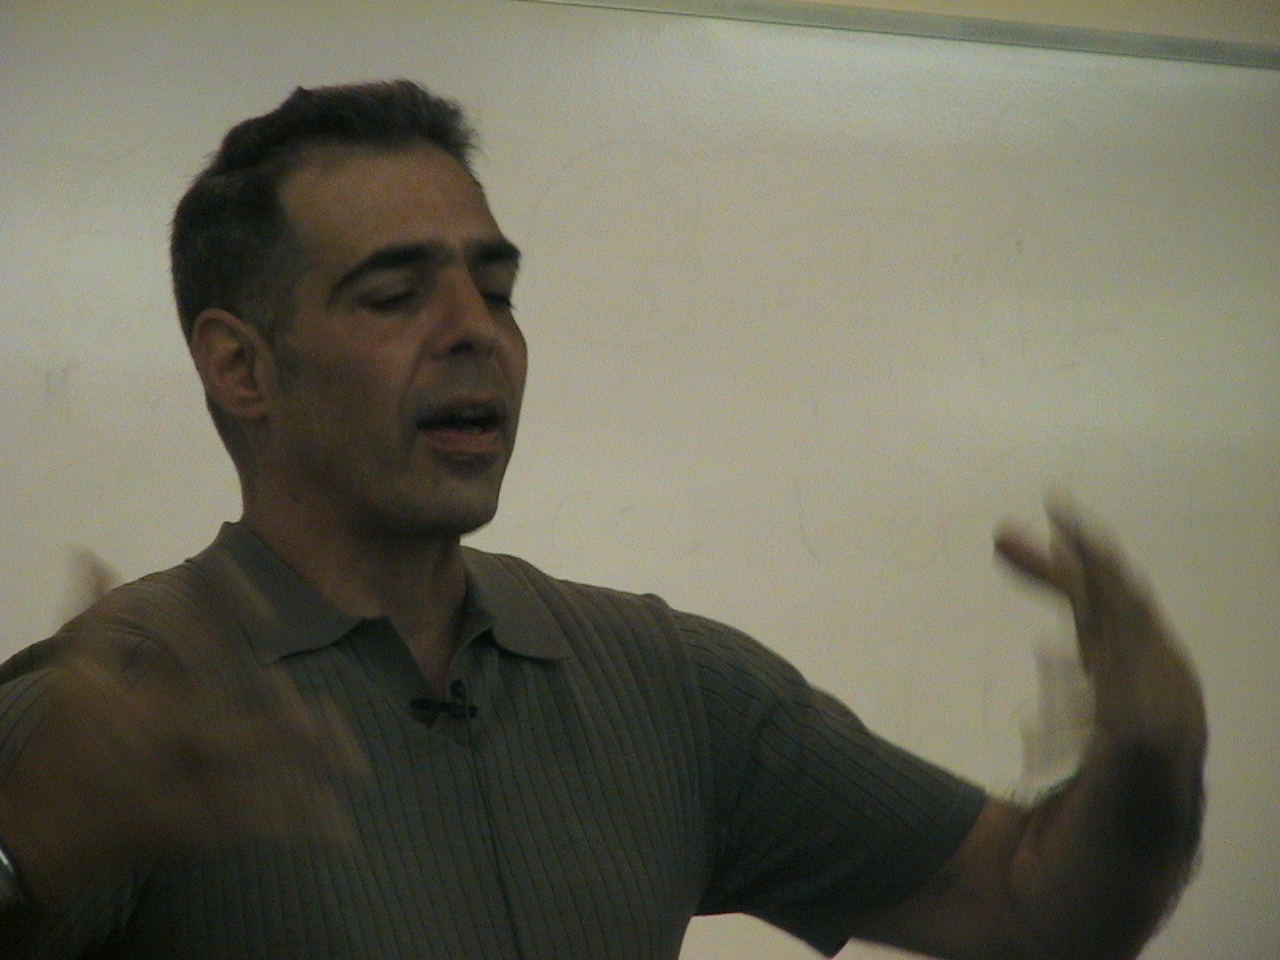 Justin Raimondo at Whittier Law School March 15, 2005